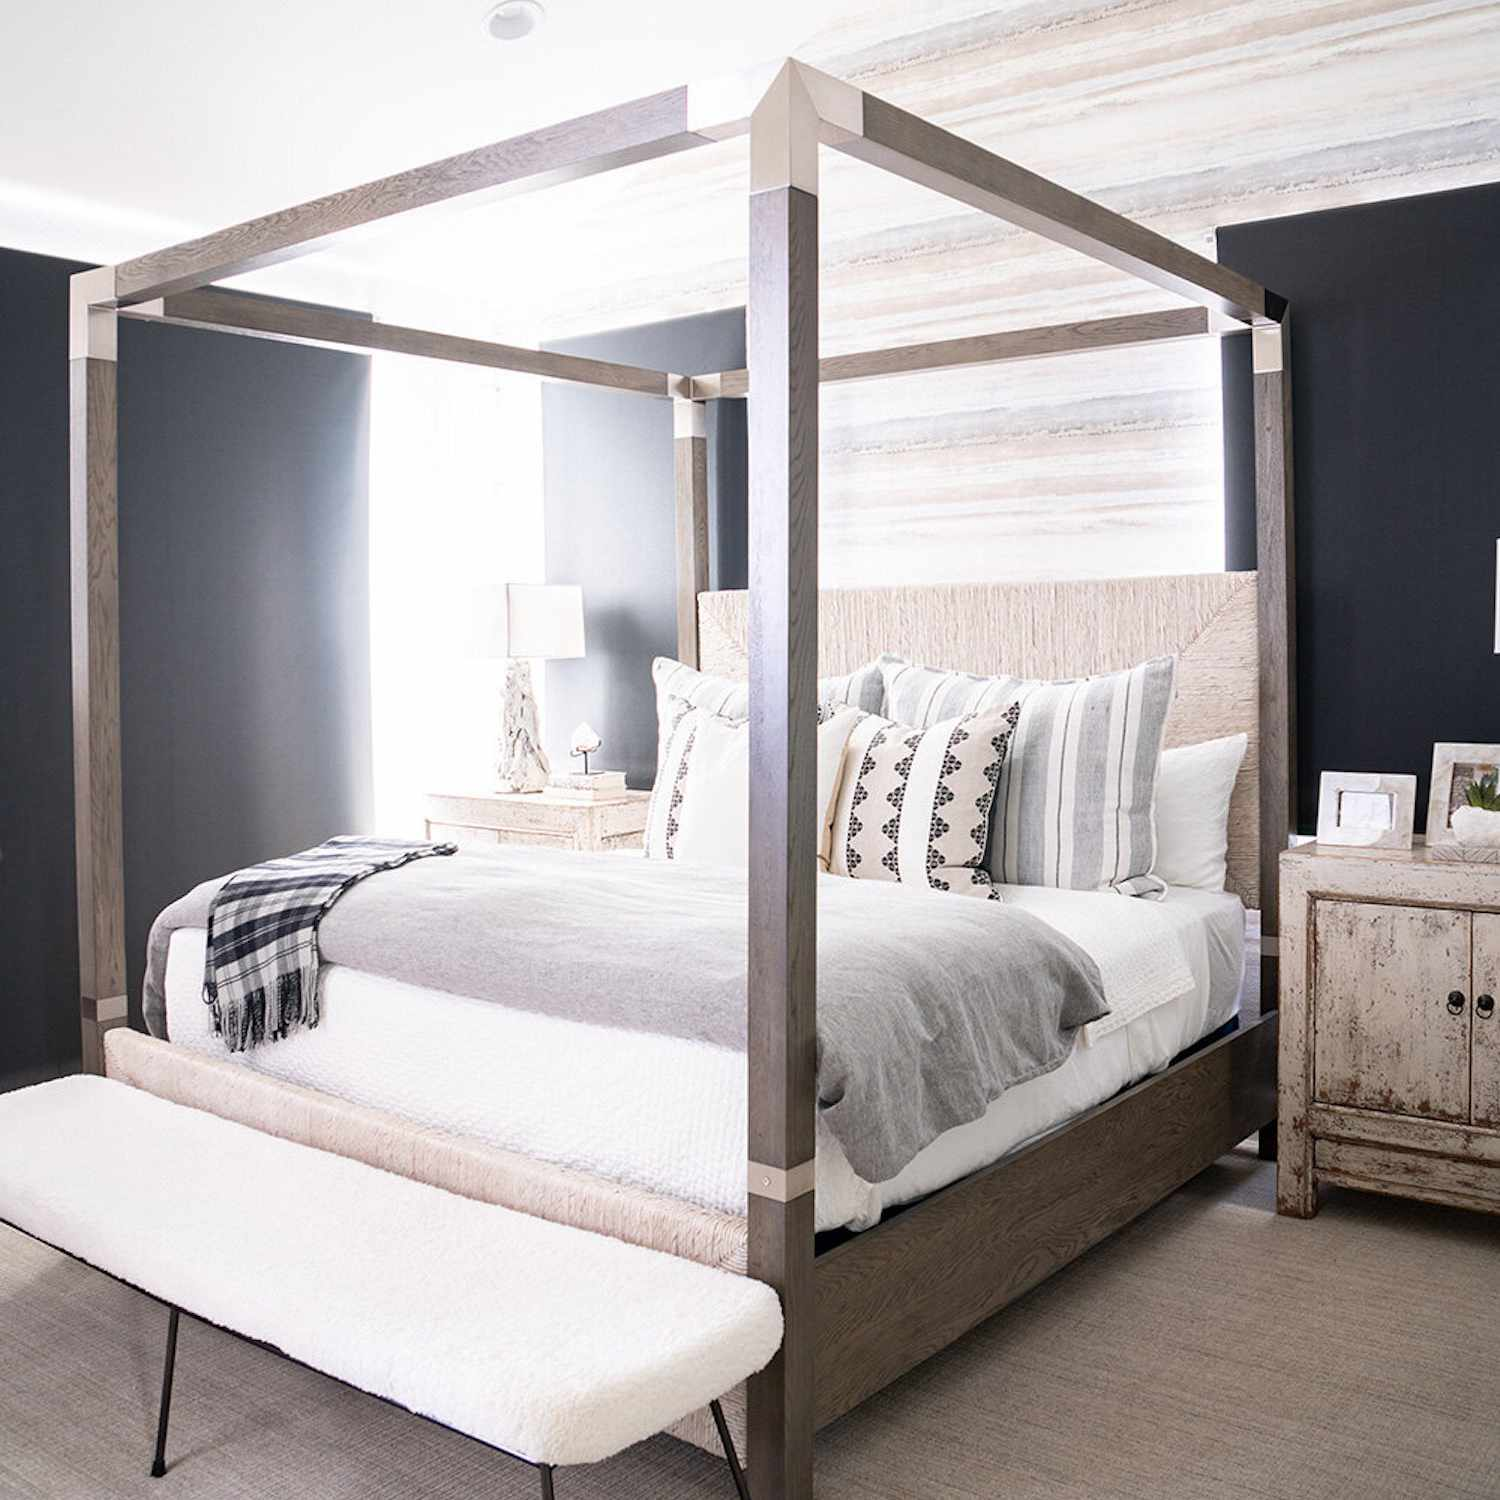 neutral gray color scheme bedroom with four post bed frame